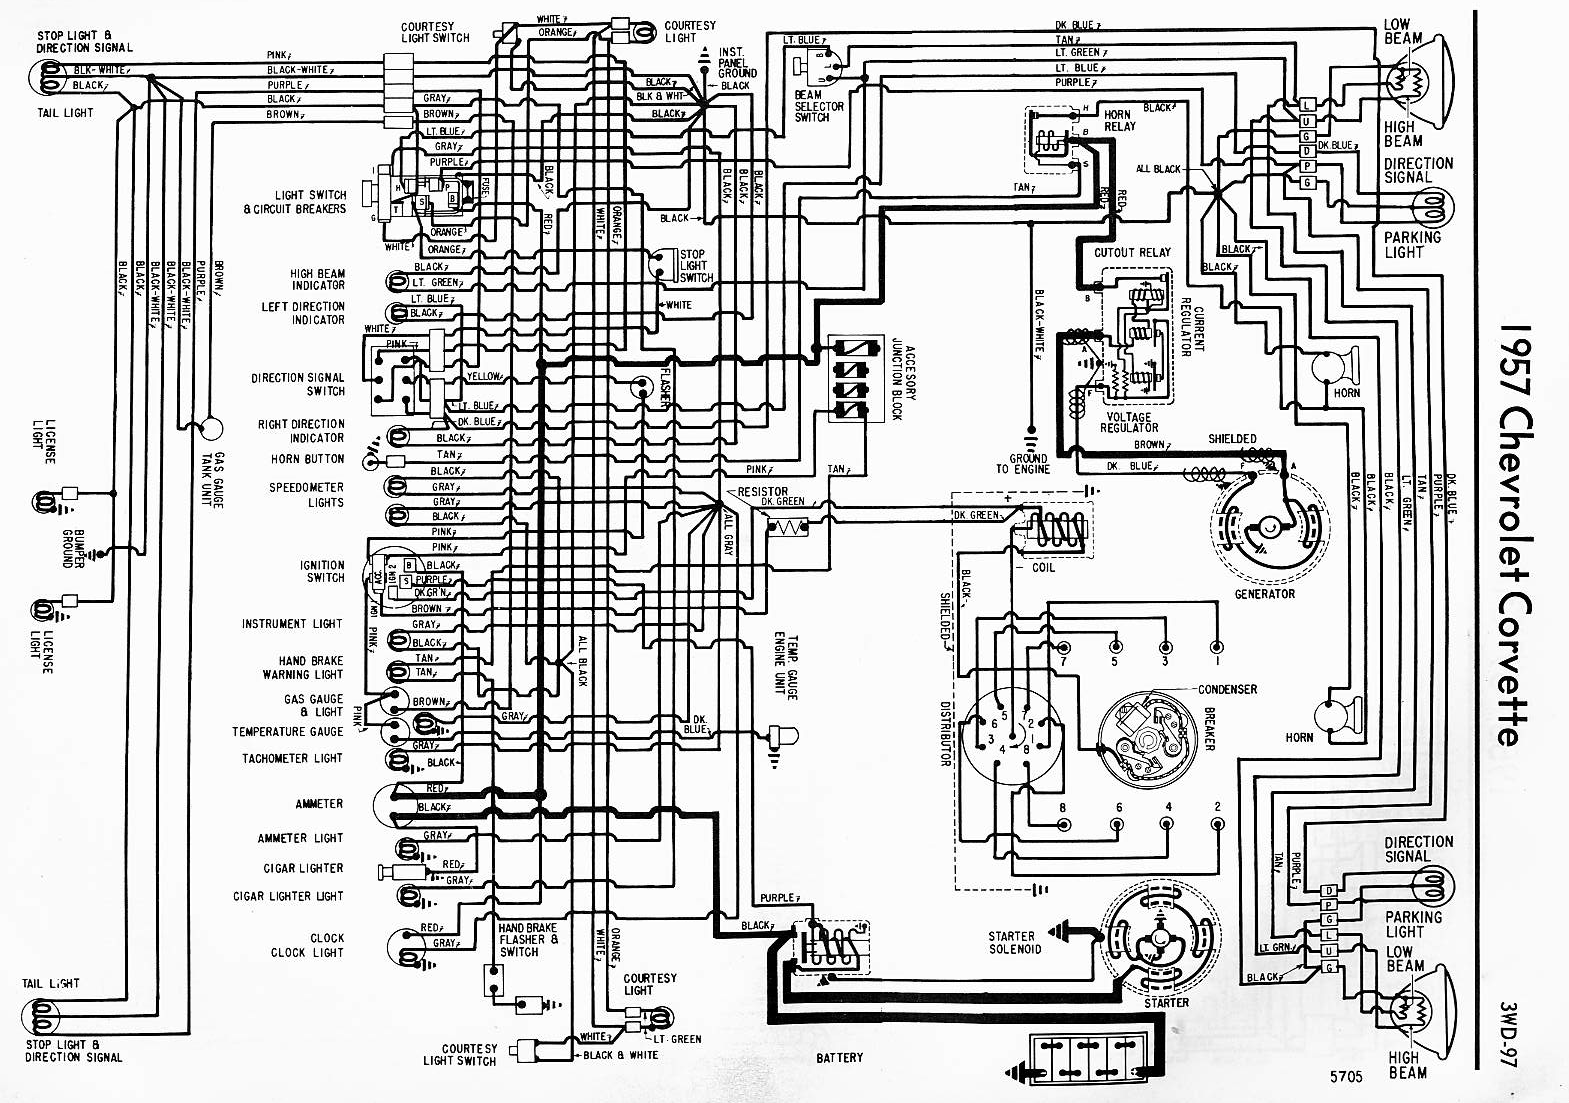 Corvette Power Window Wiring Diagram on 1977 corvette power window wiring diagram, 1975 corvette power window wiring diagram, 1968 corvette power window wiring diagram,